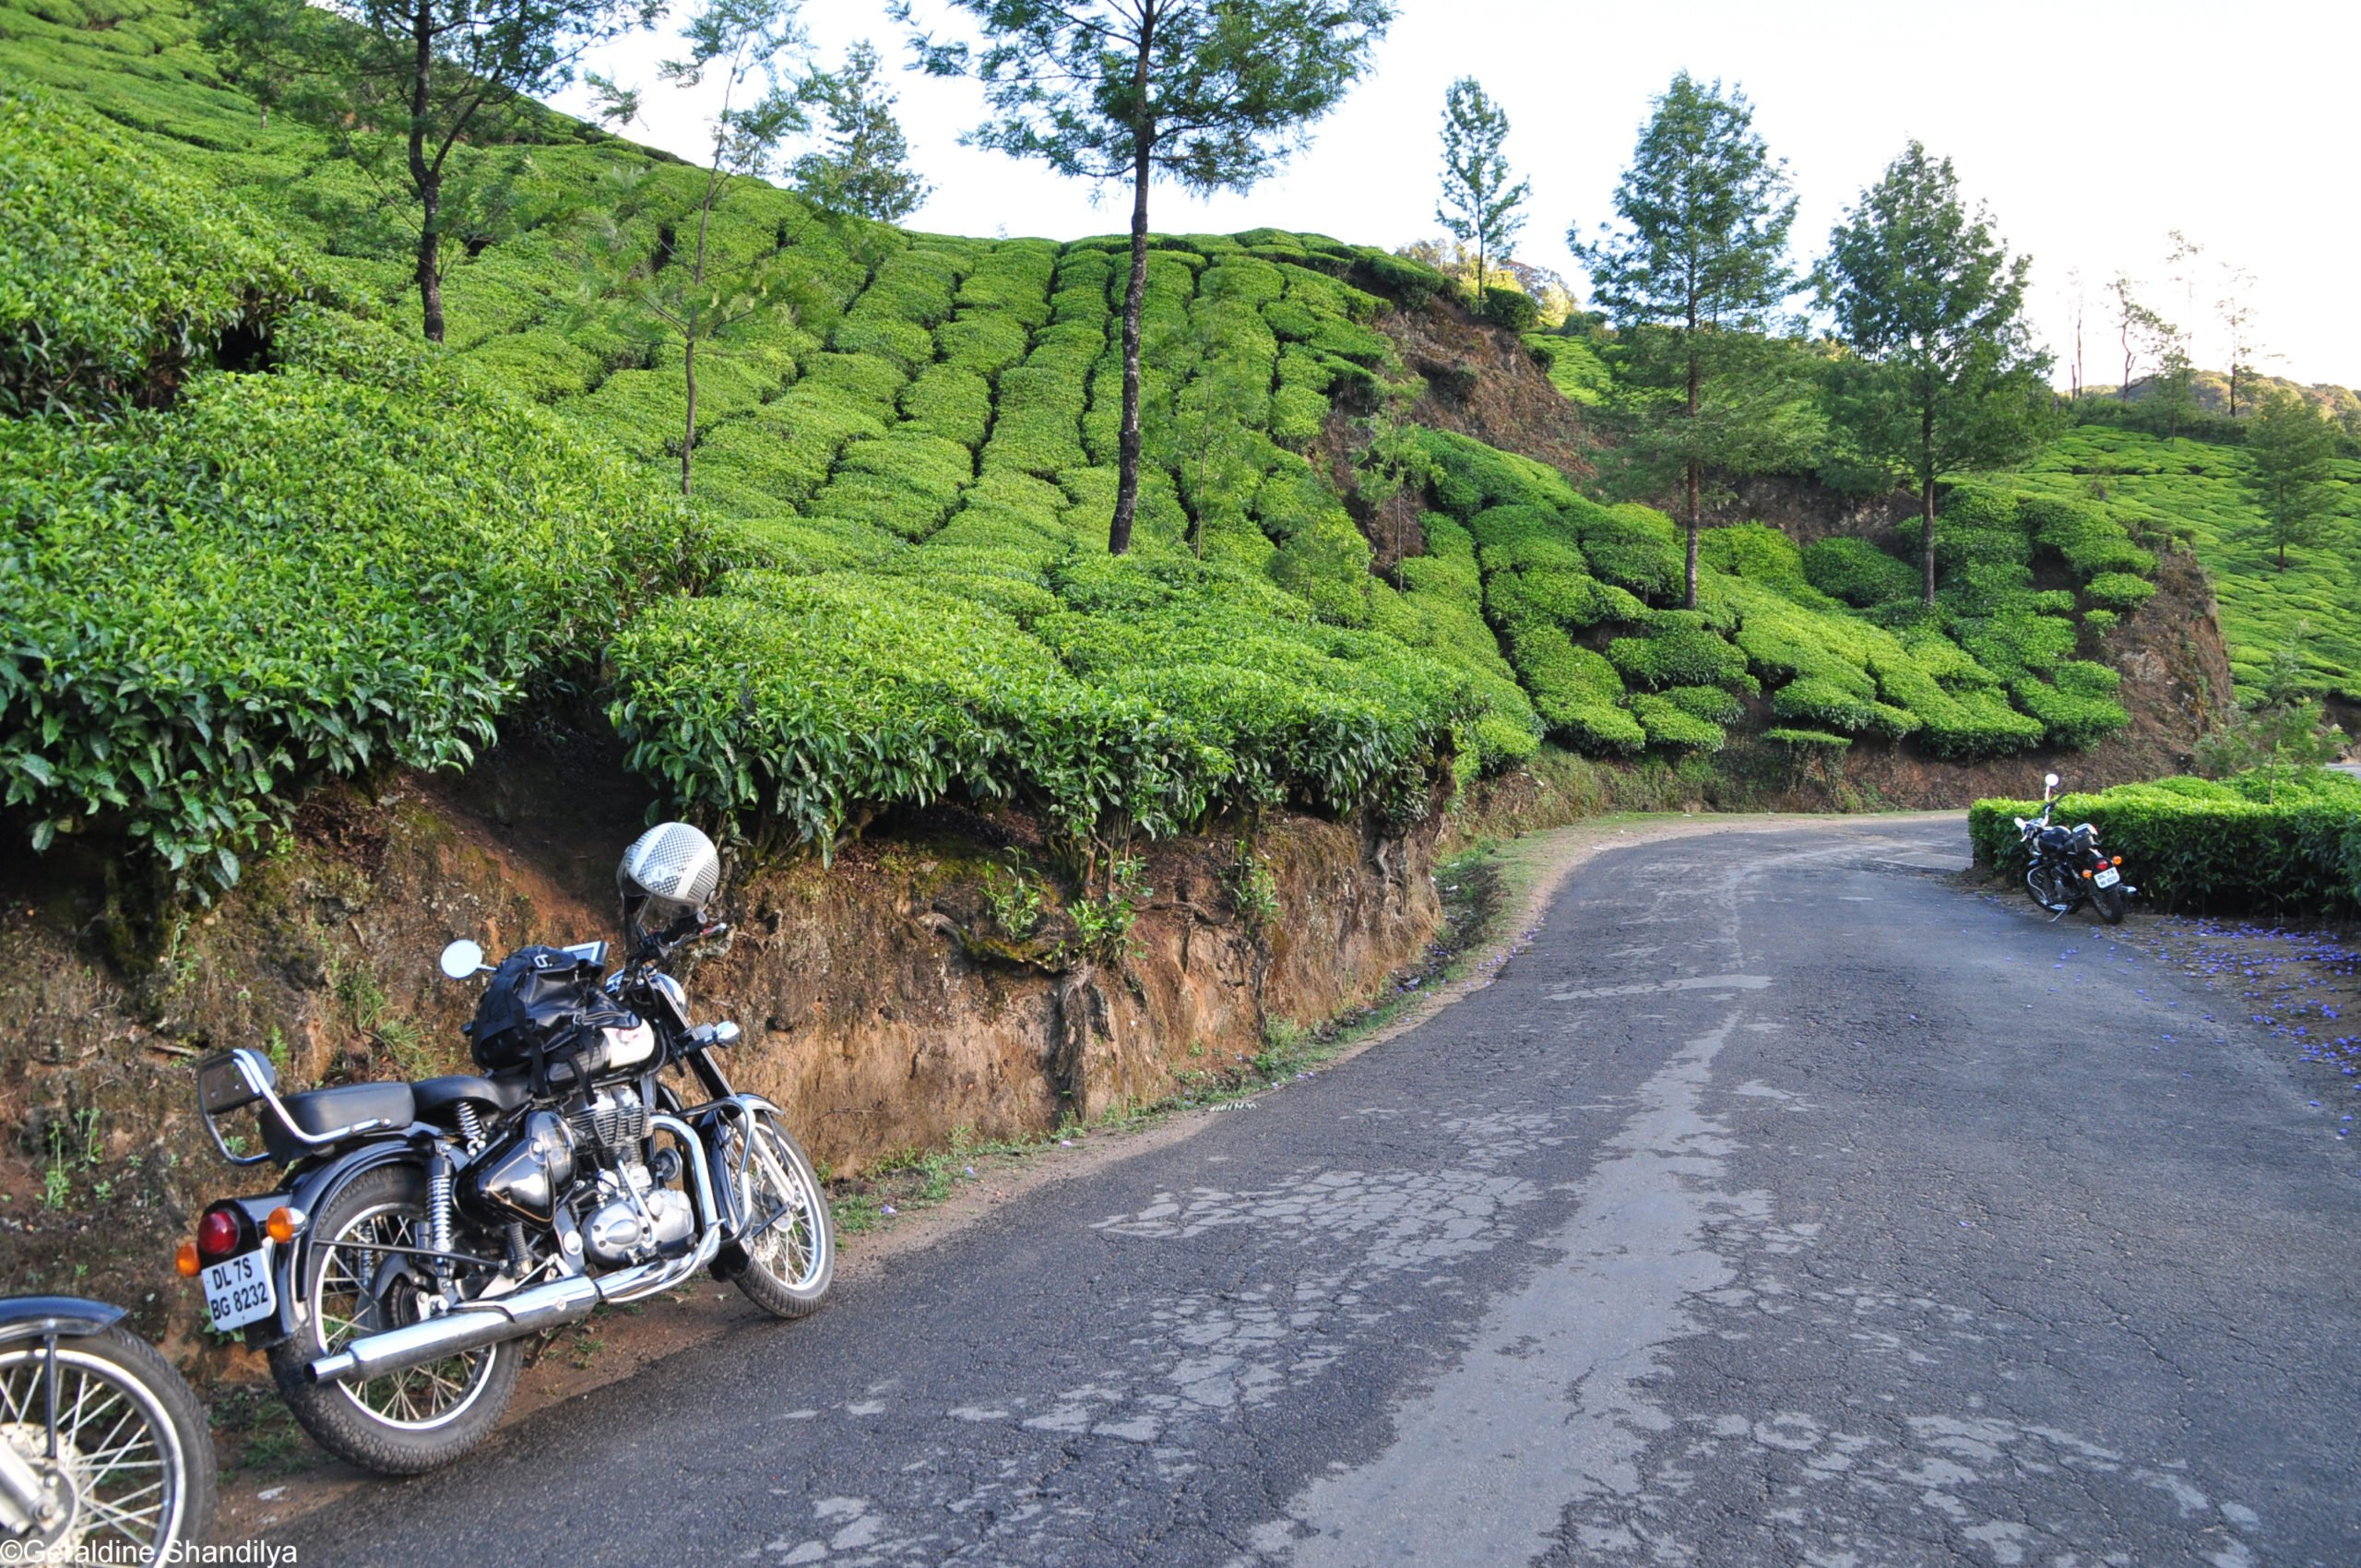 Motorcycle road trip India / Southern India - The Spices Route